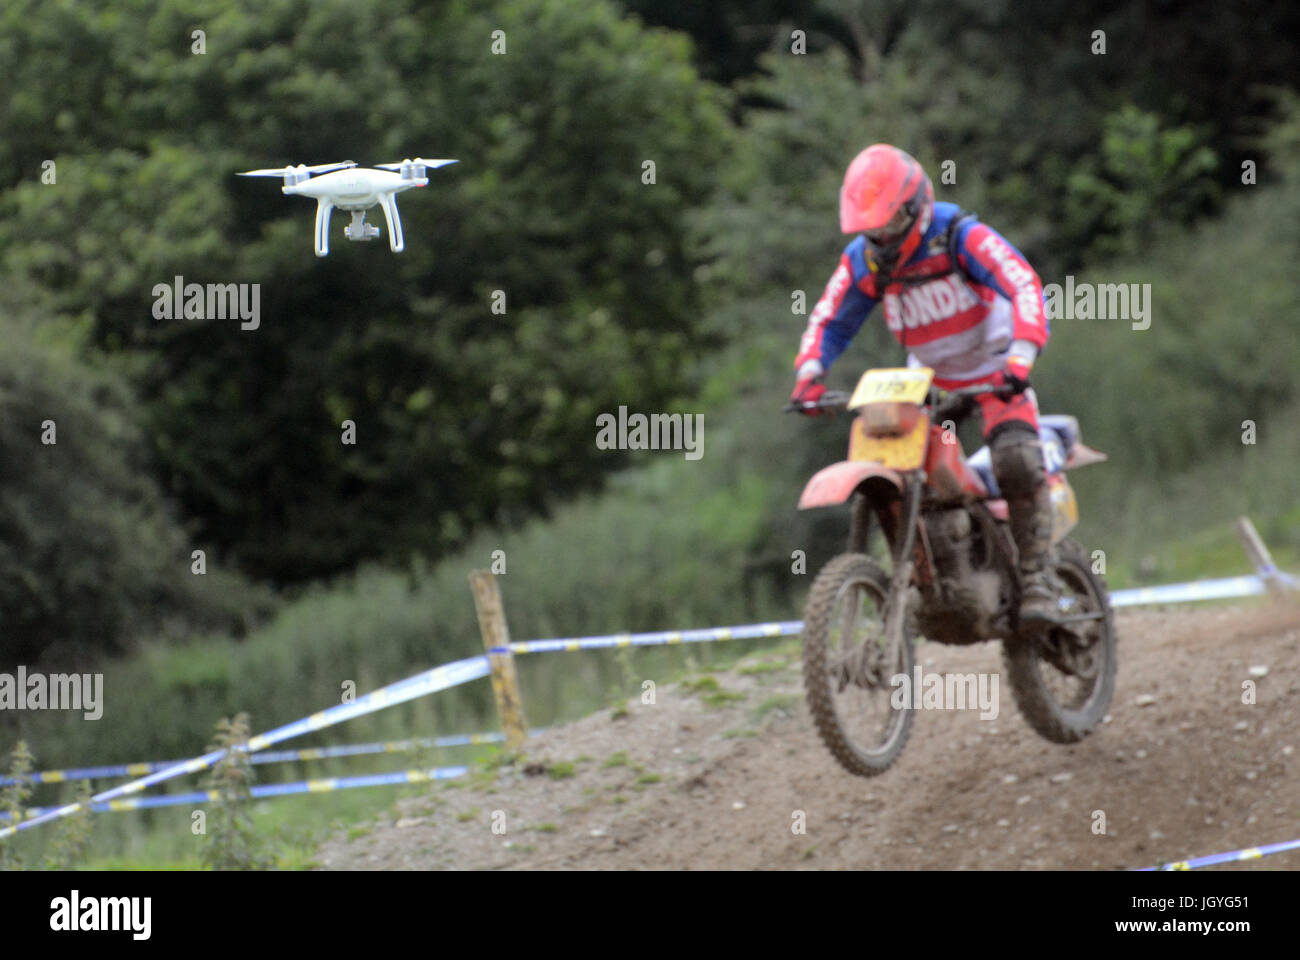 A Drone films the Welsh 2 Day Enduro in Llandrindod Wells , Wales - Stock Image